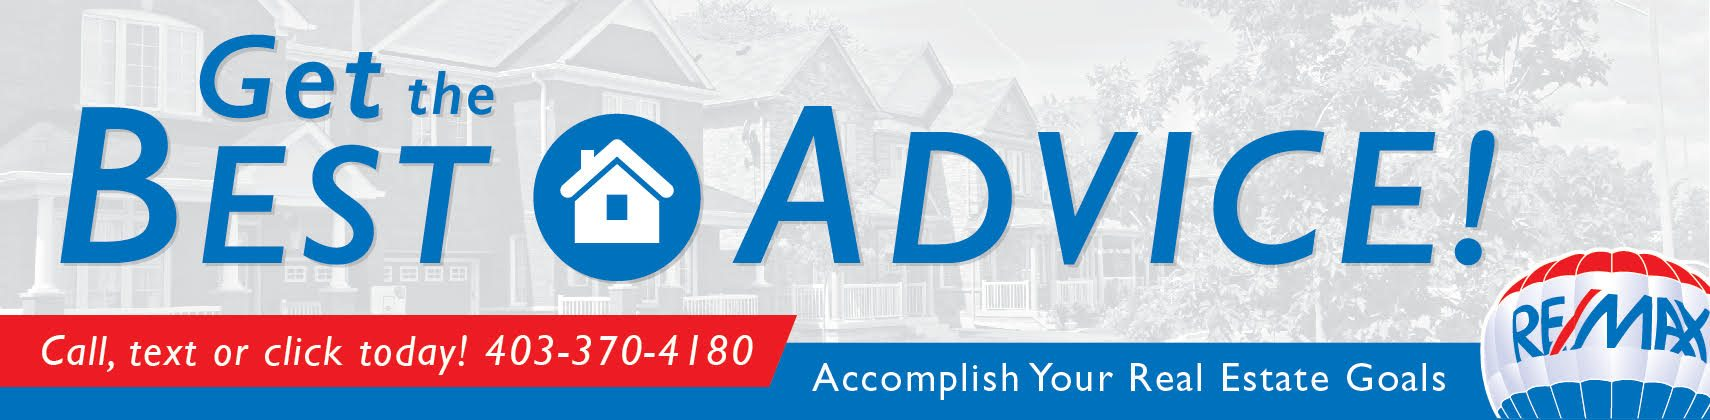 westside calgary real estate agents - get the best advice!